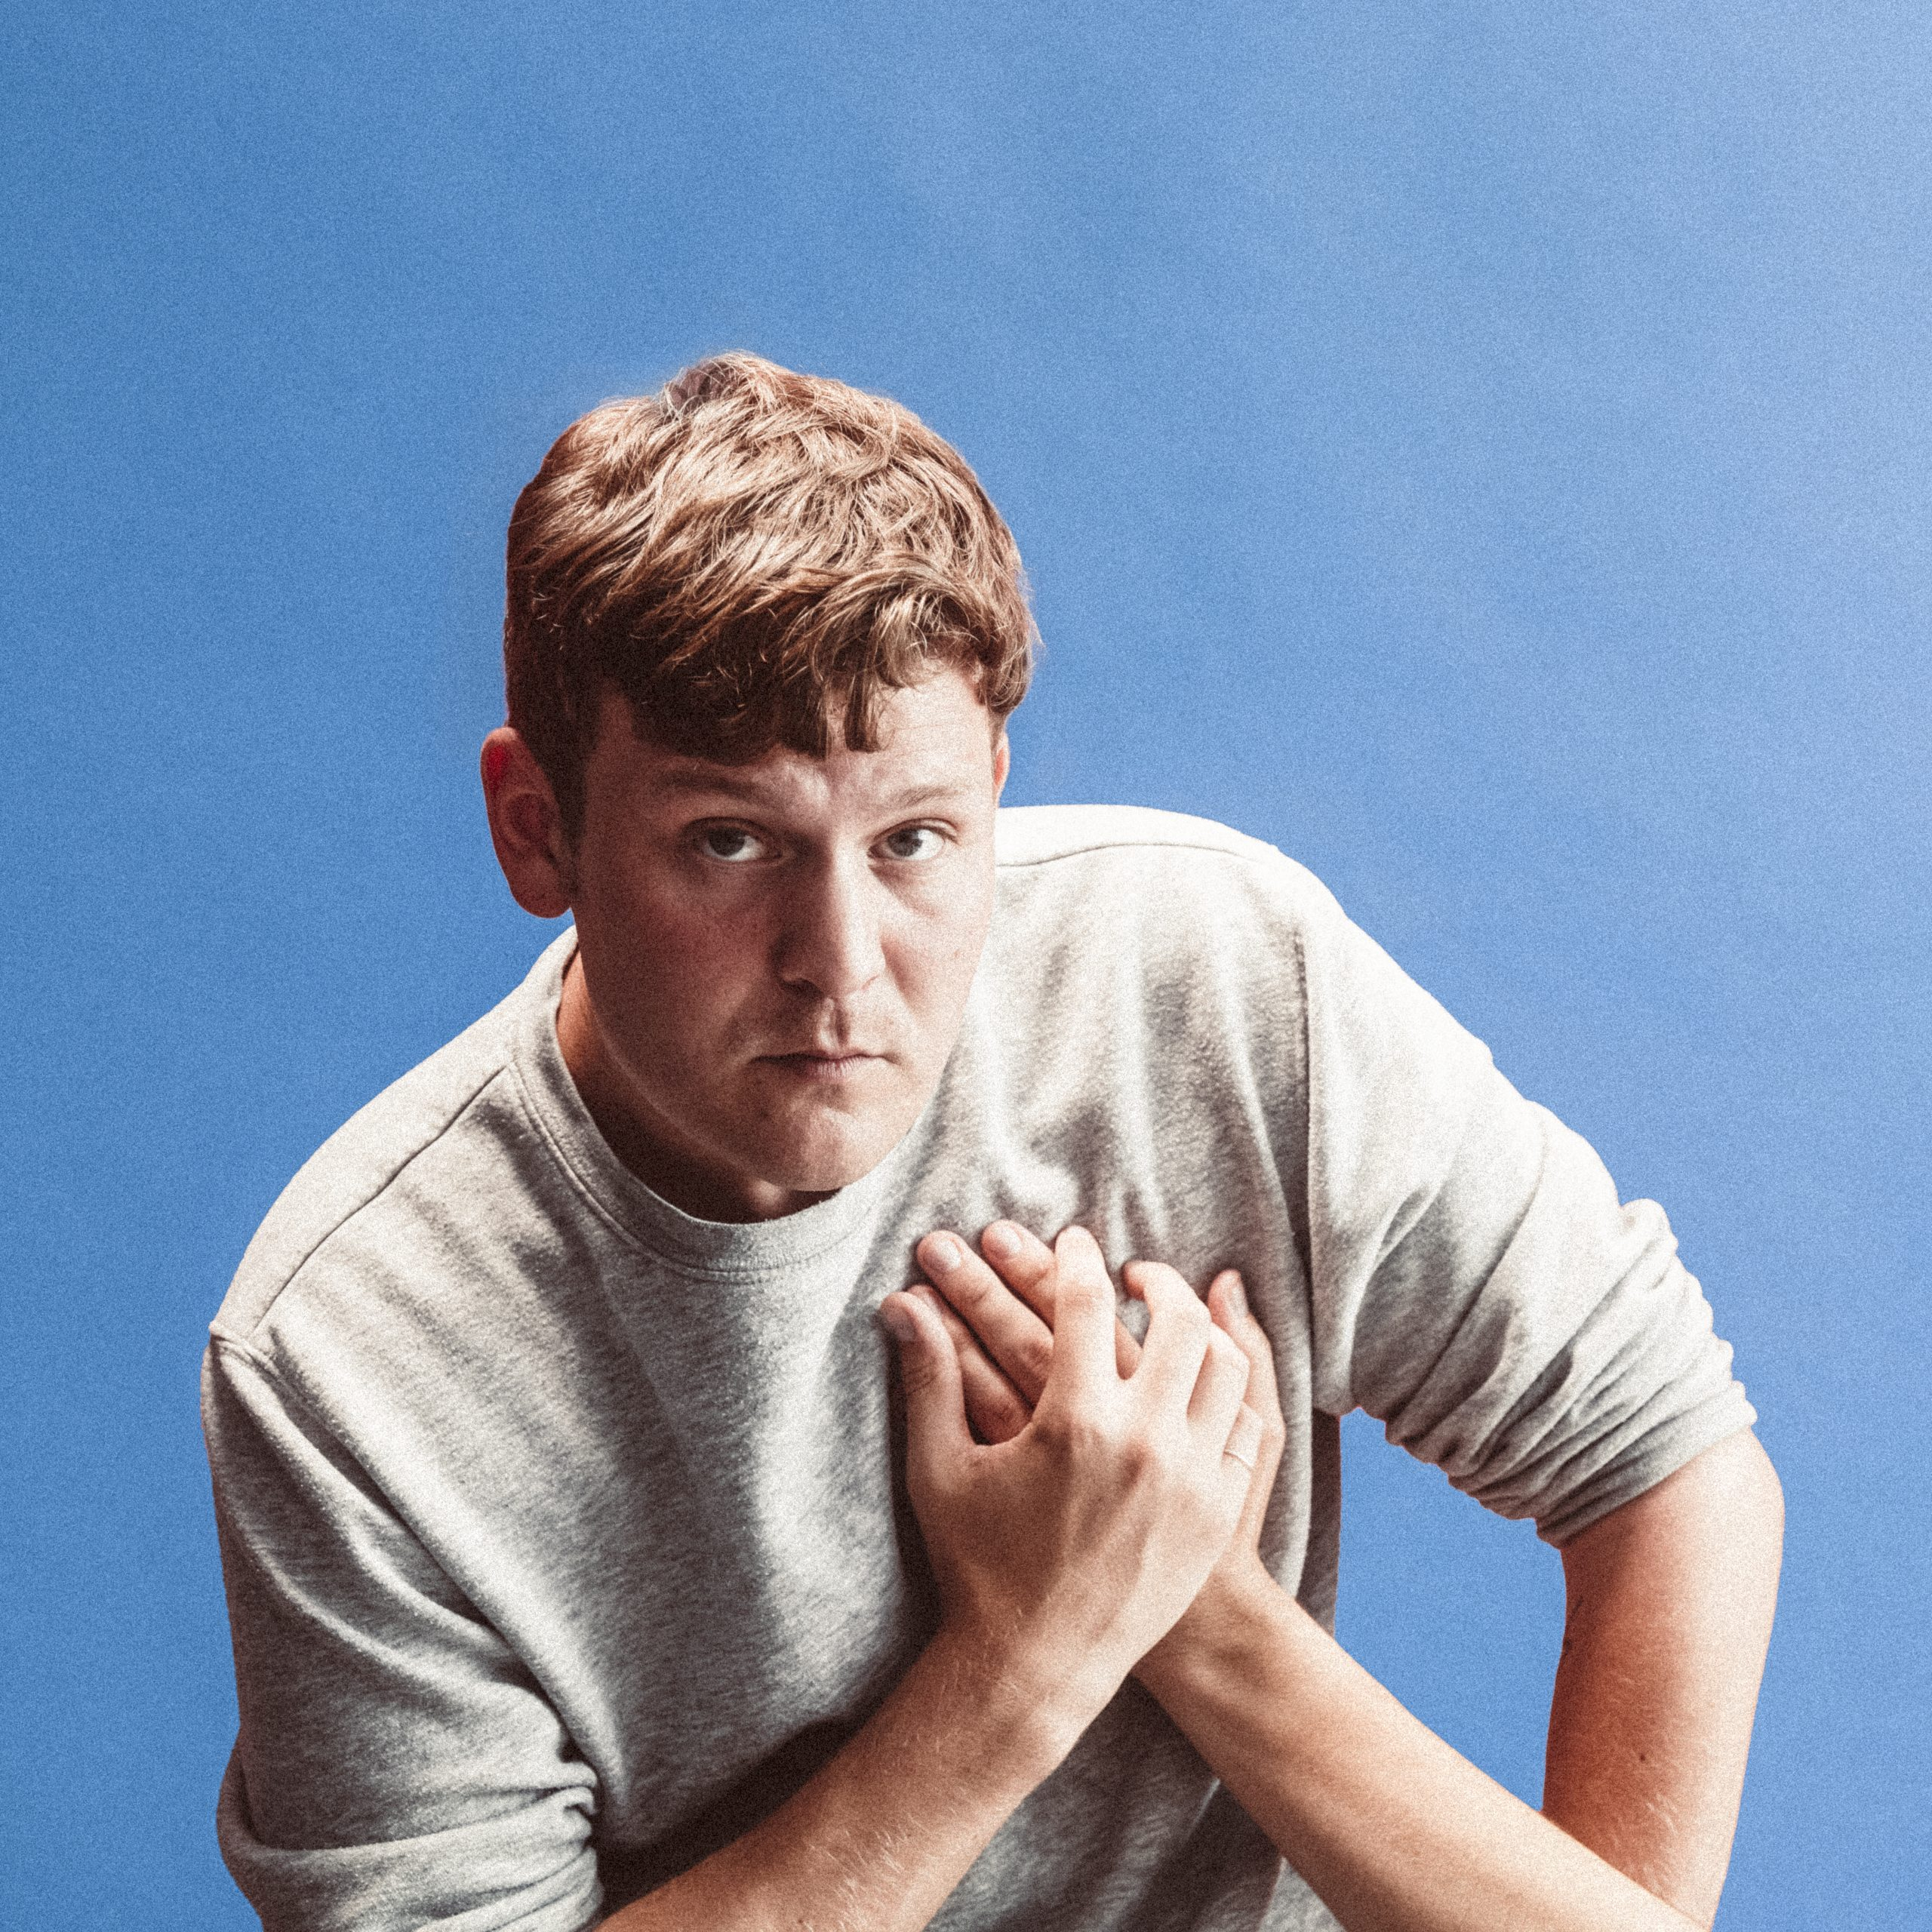 Album Review: Huck Hastings unveils a sparkling and gorgeous album 'Cheers to Progress', draped in love, loss, longing and optimism.